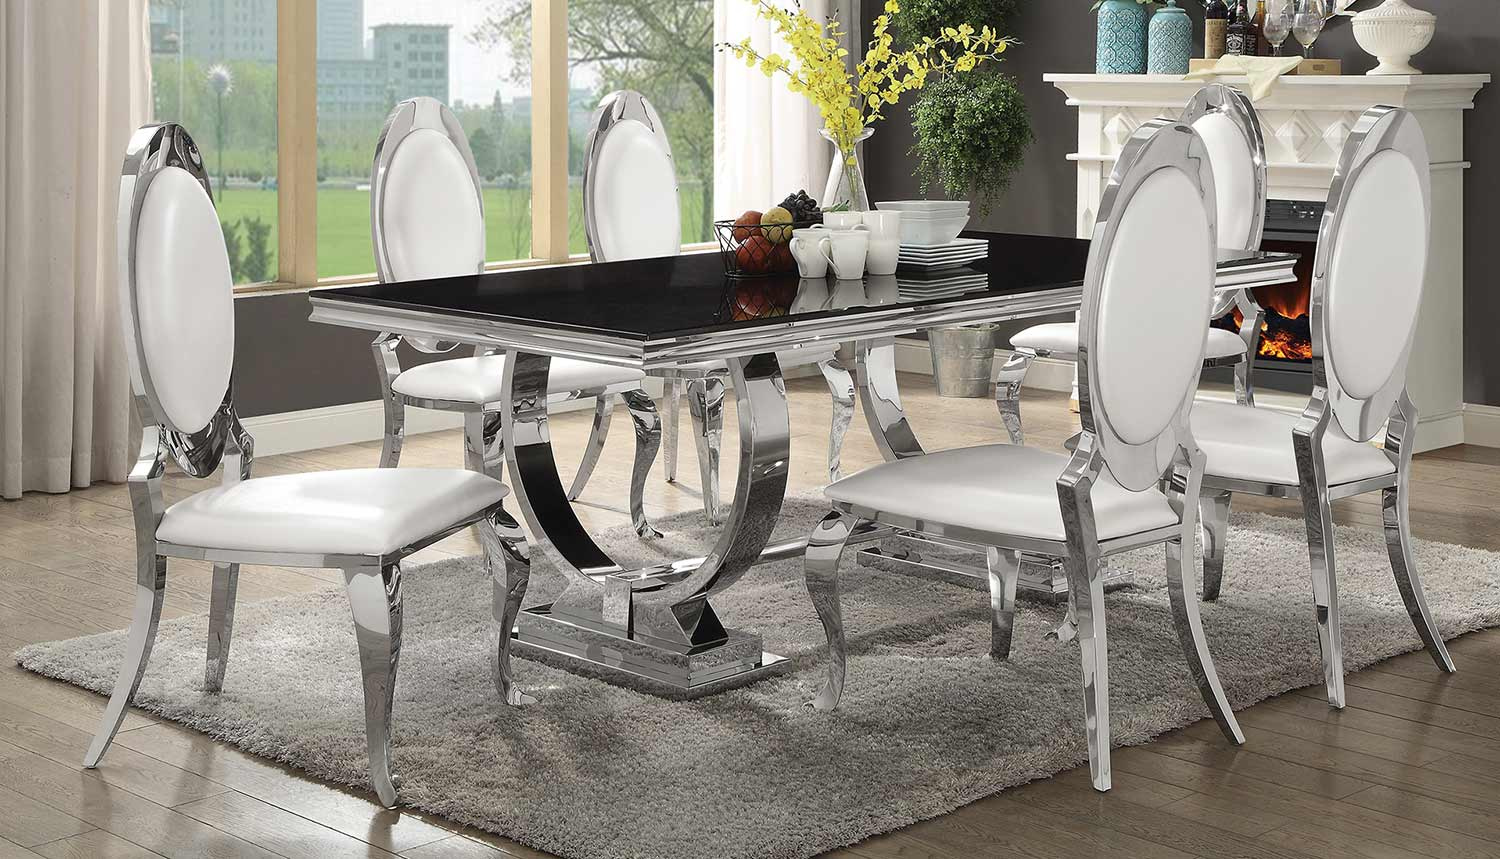 Coaster Antoine Dining Set - Chrome